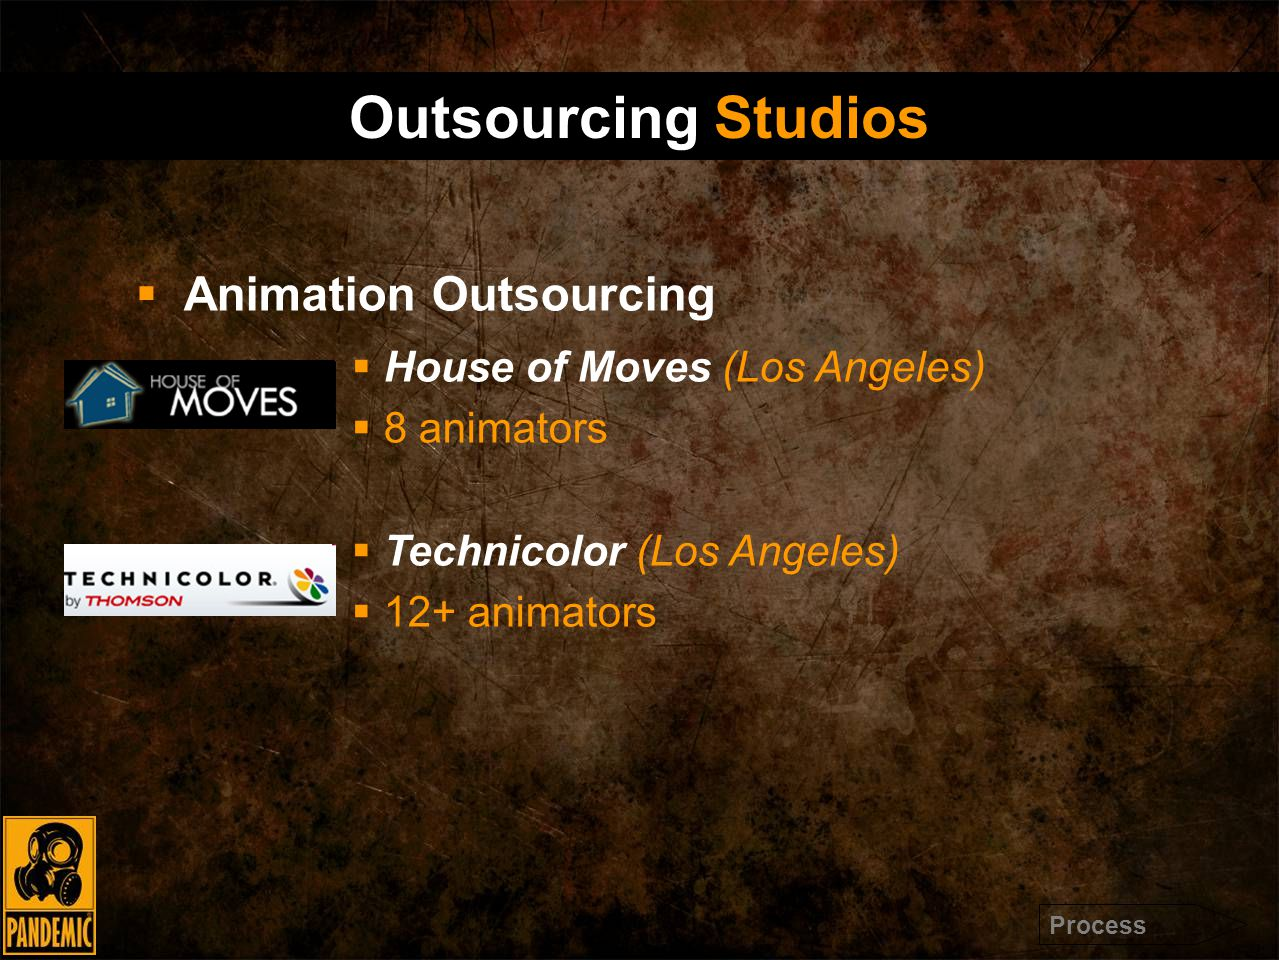  Animation Outsourcing  House of Moves (Los Angeles)  8 animators  Technicolor (Los Angeles)  12+ animators Outsourcing Studios Process